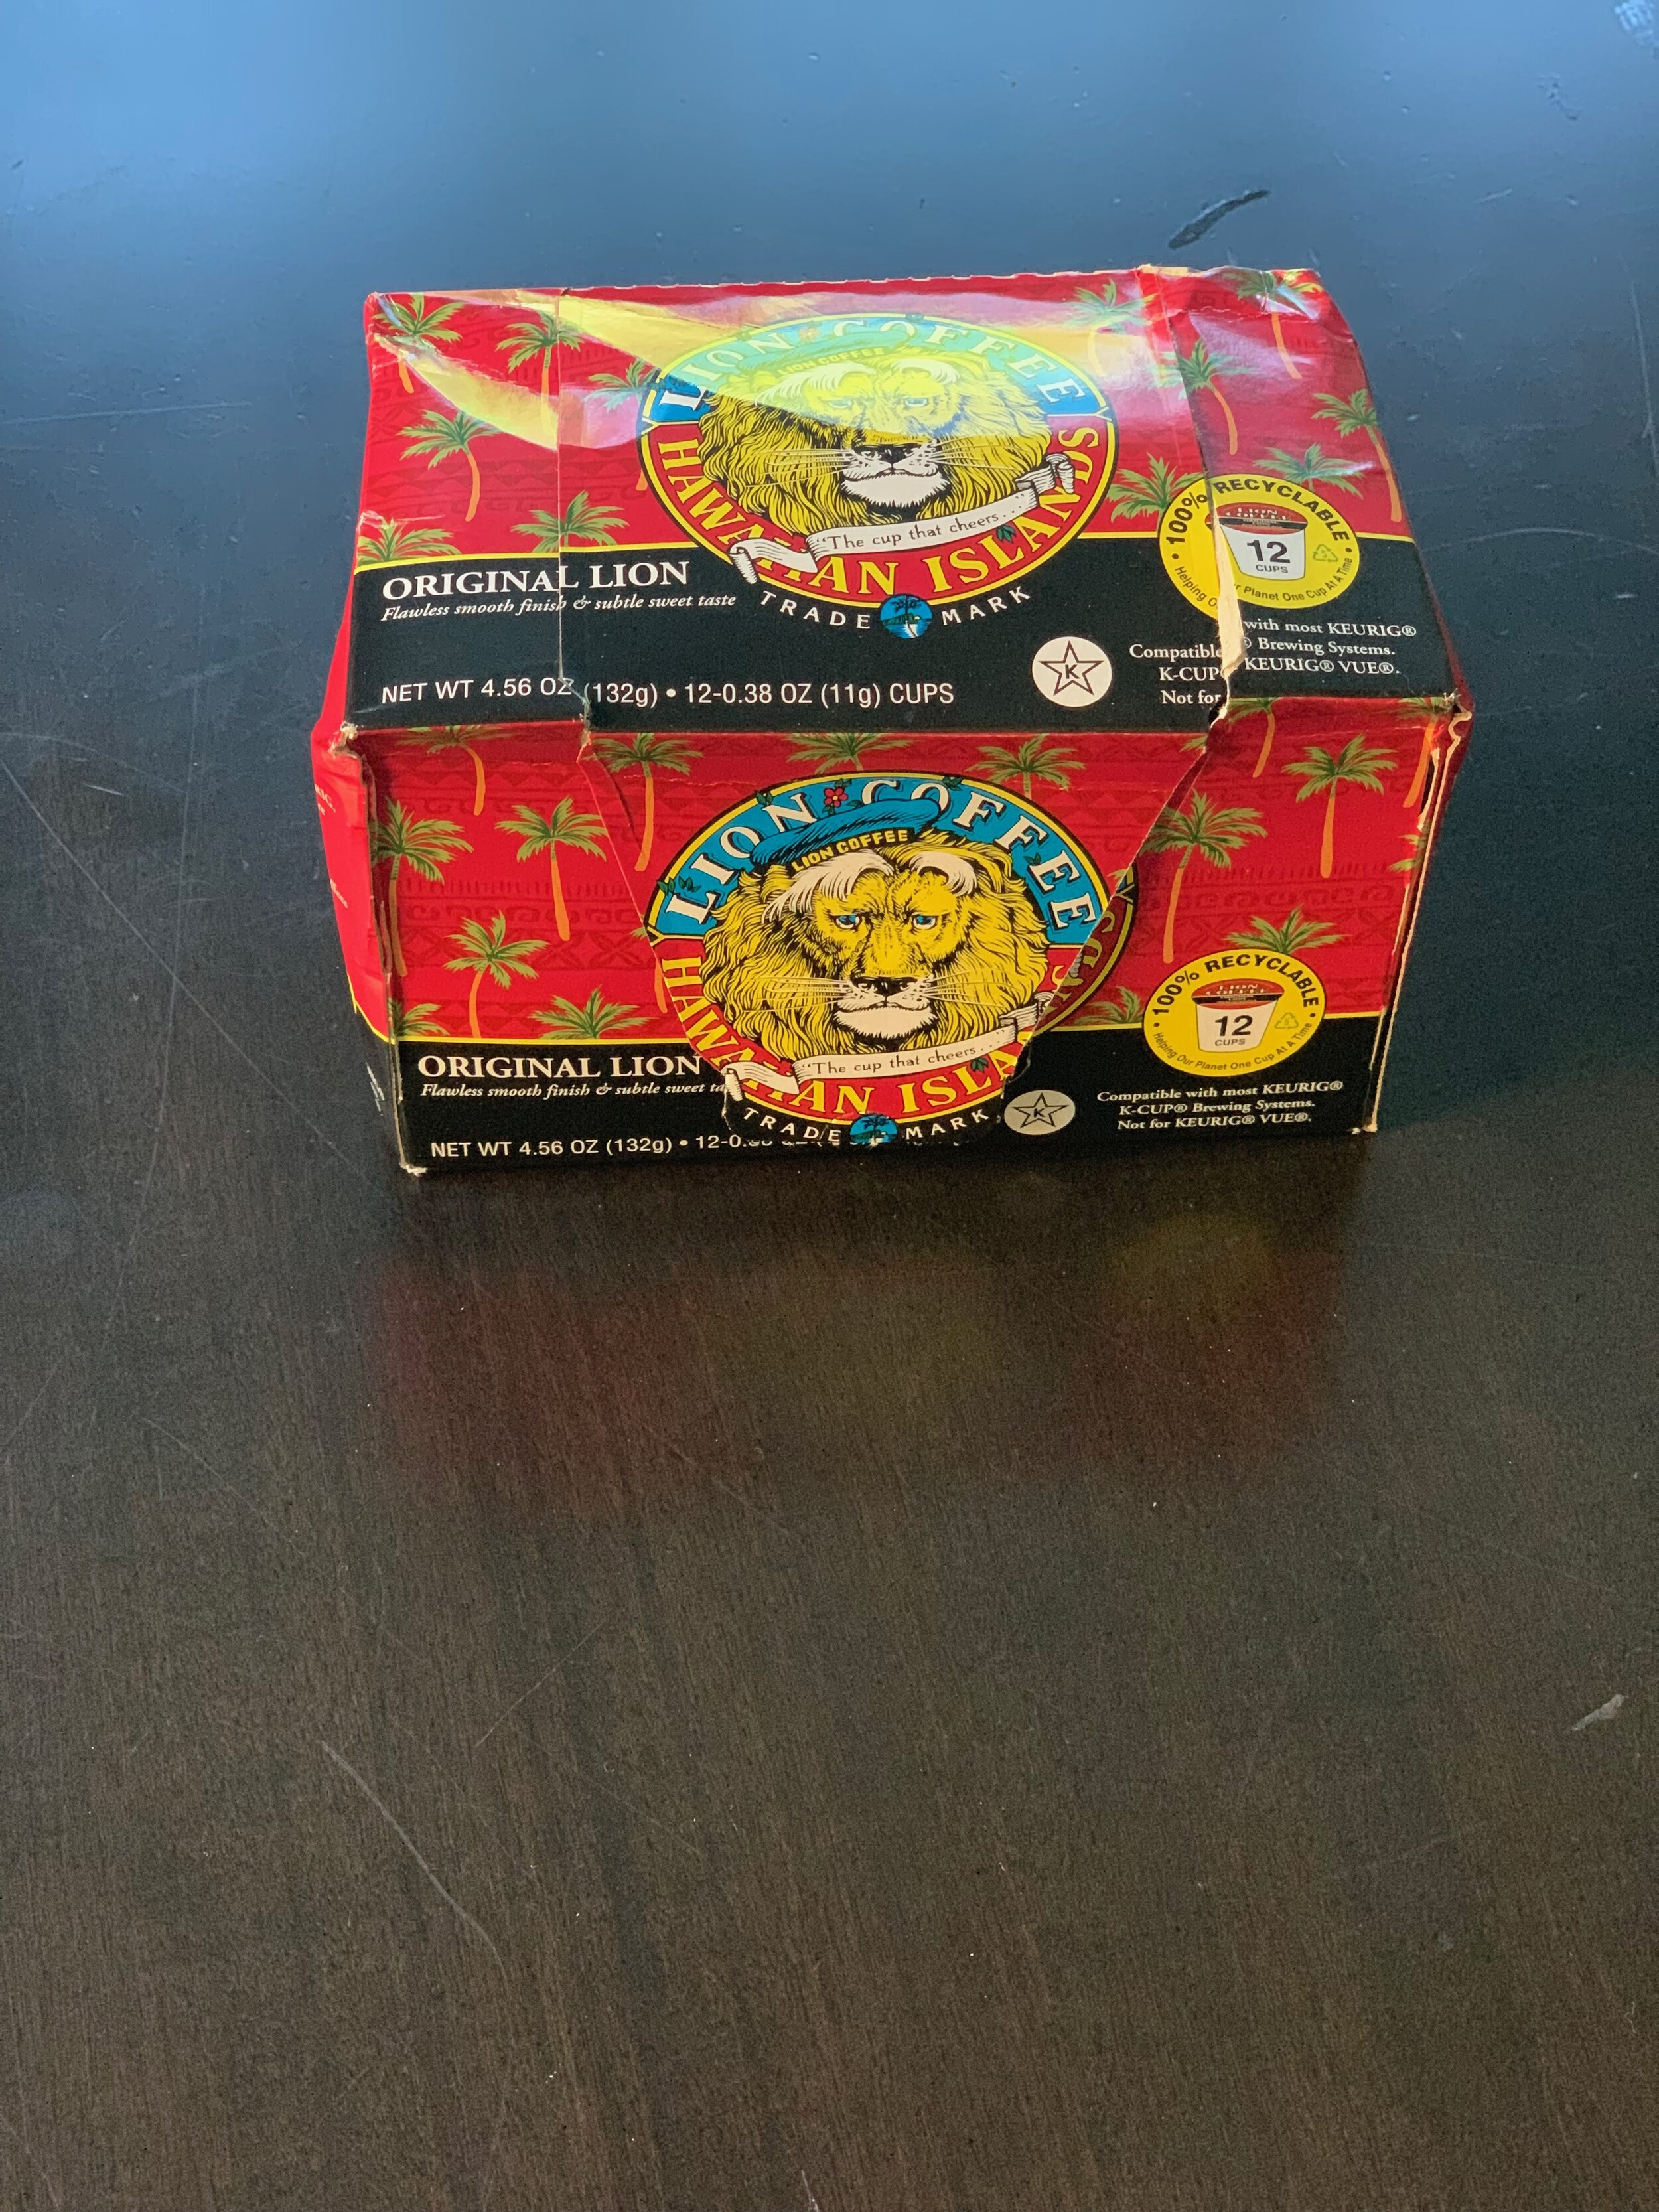 This  pinch  was part of a large care package from Hawaii. Coffee pods of Hawaiian coffee made for Keurig-type machines.